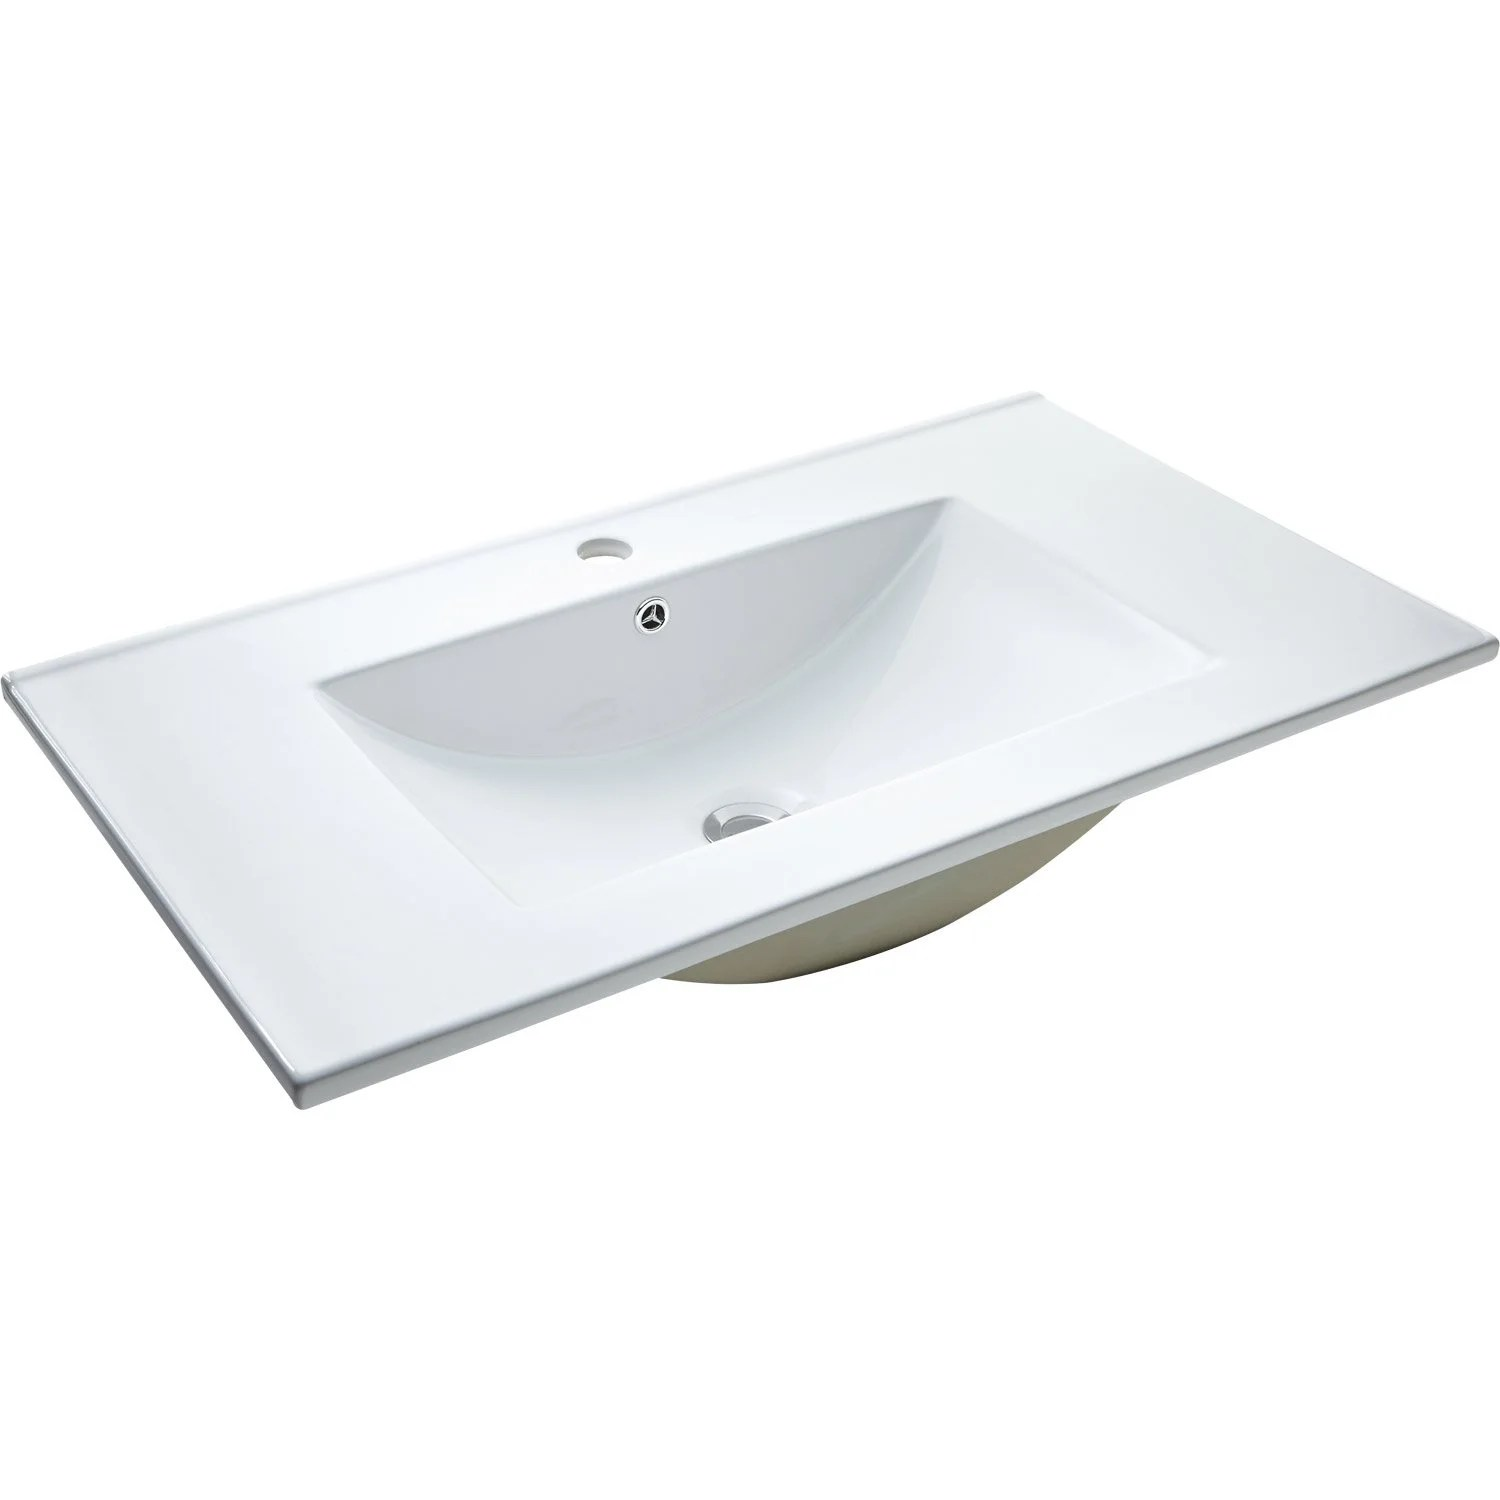 Vasque à Encastrer Leroy Merlin Plan Vasque Simple Promo 81 Cm Leroy Merlin